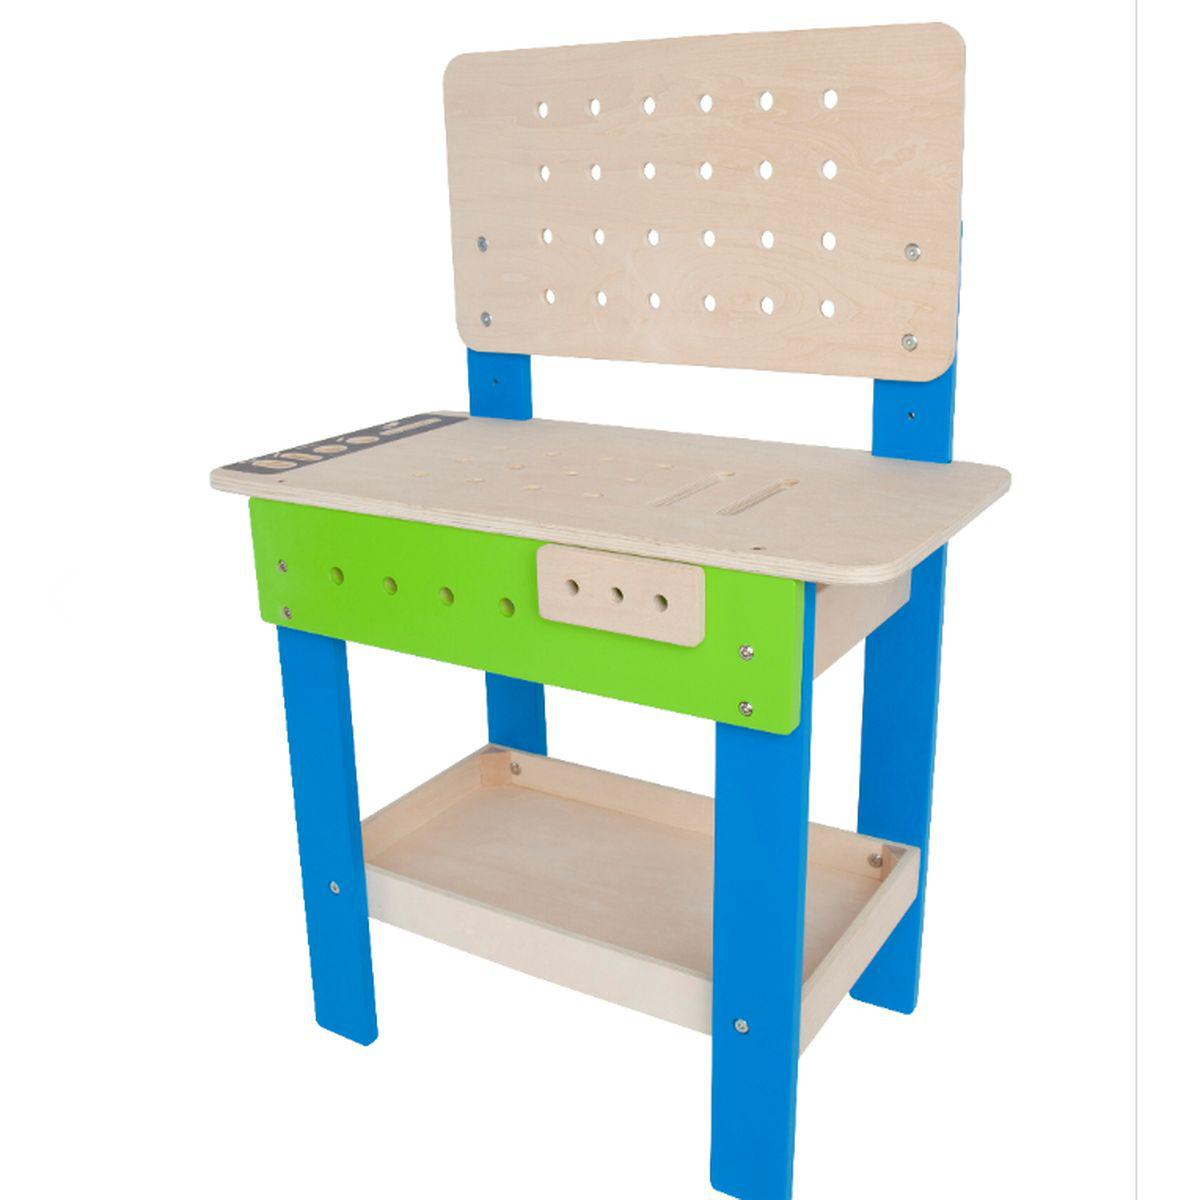 MASTER WORKBENCH by Hape Etabli en bois